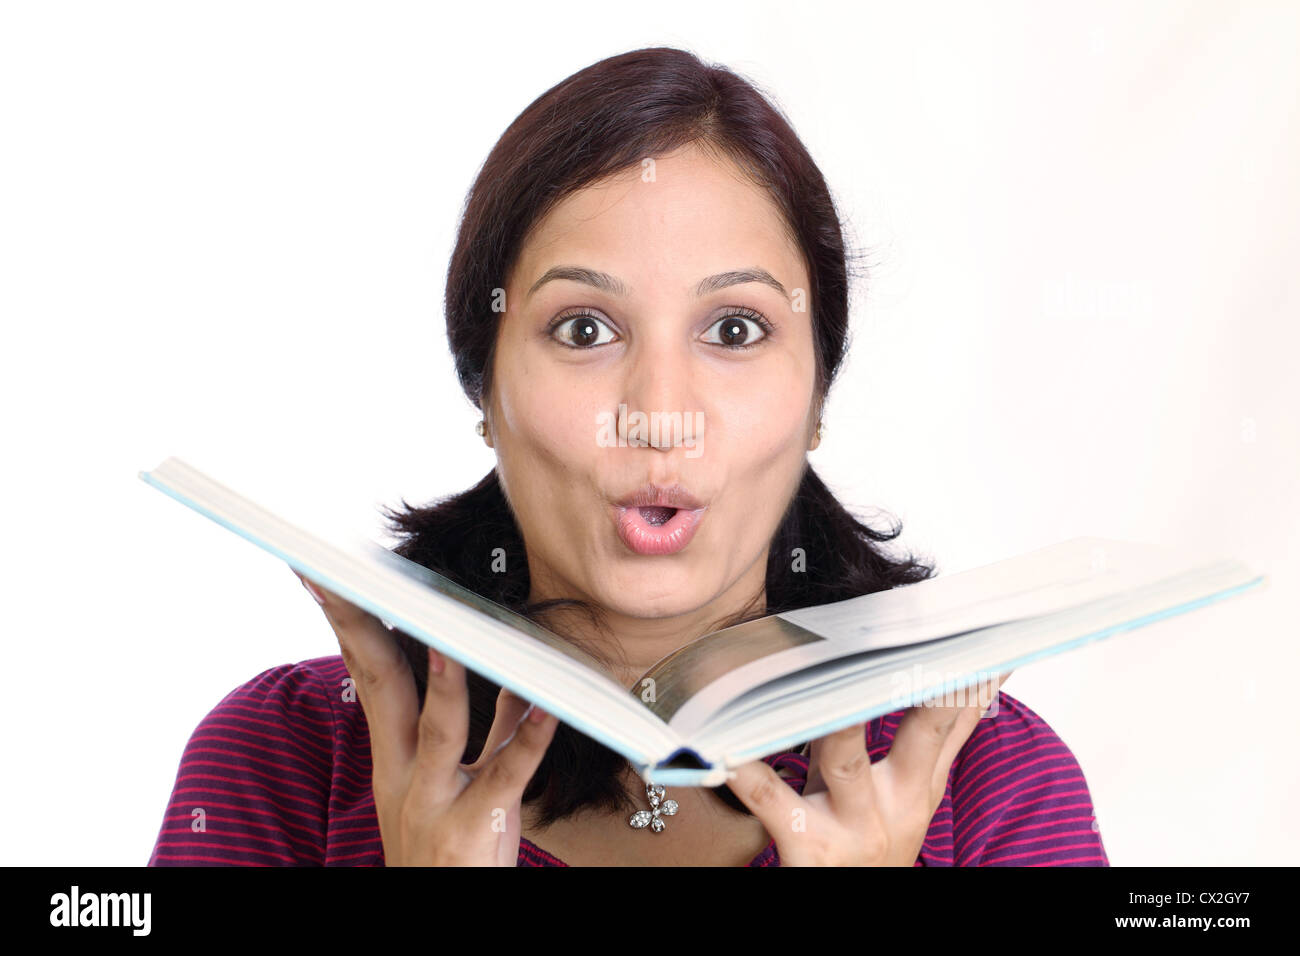 Young Indian female student looking over book - Stock Image